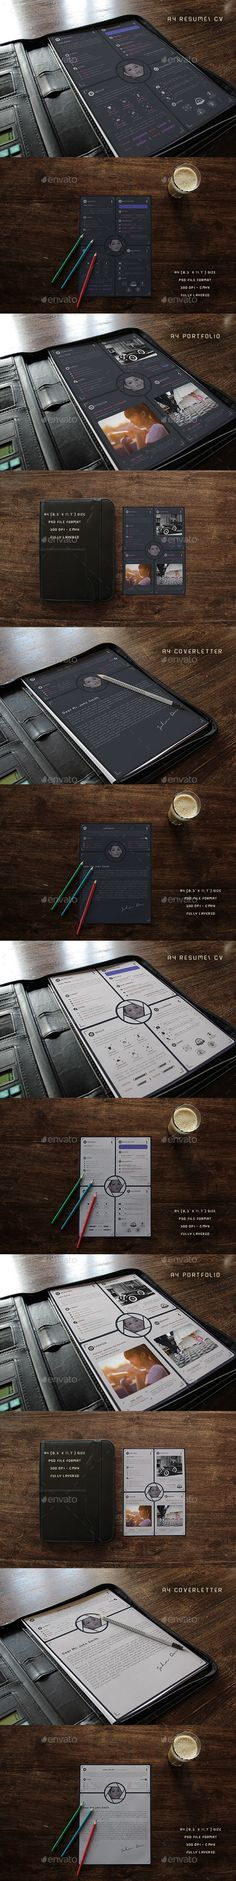 Resume\/CV Resume cv, Font logo and Logos - photography resume template